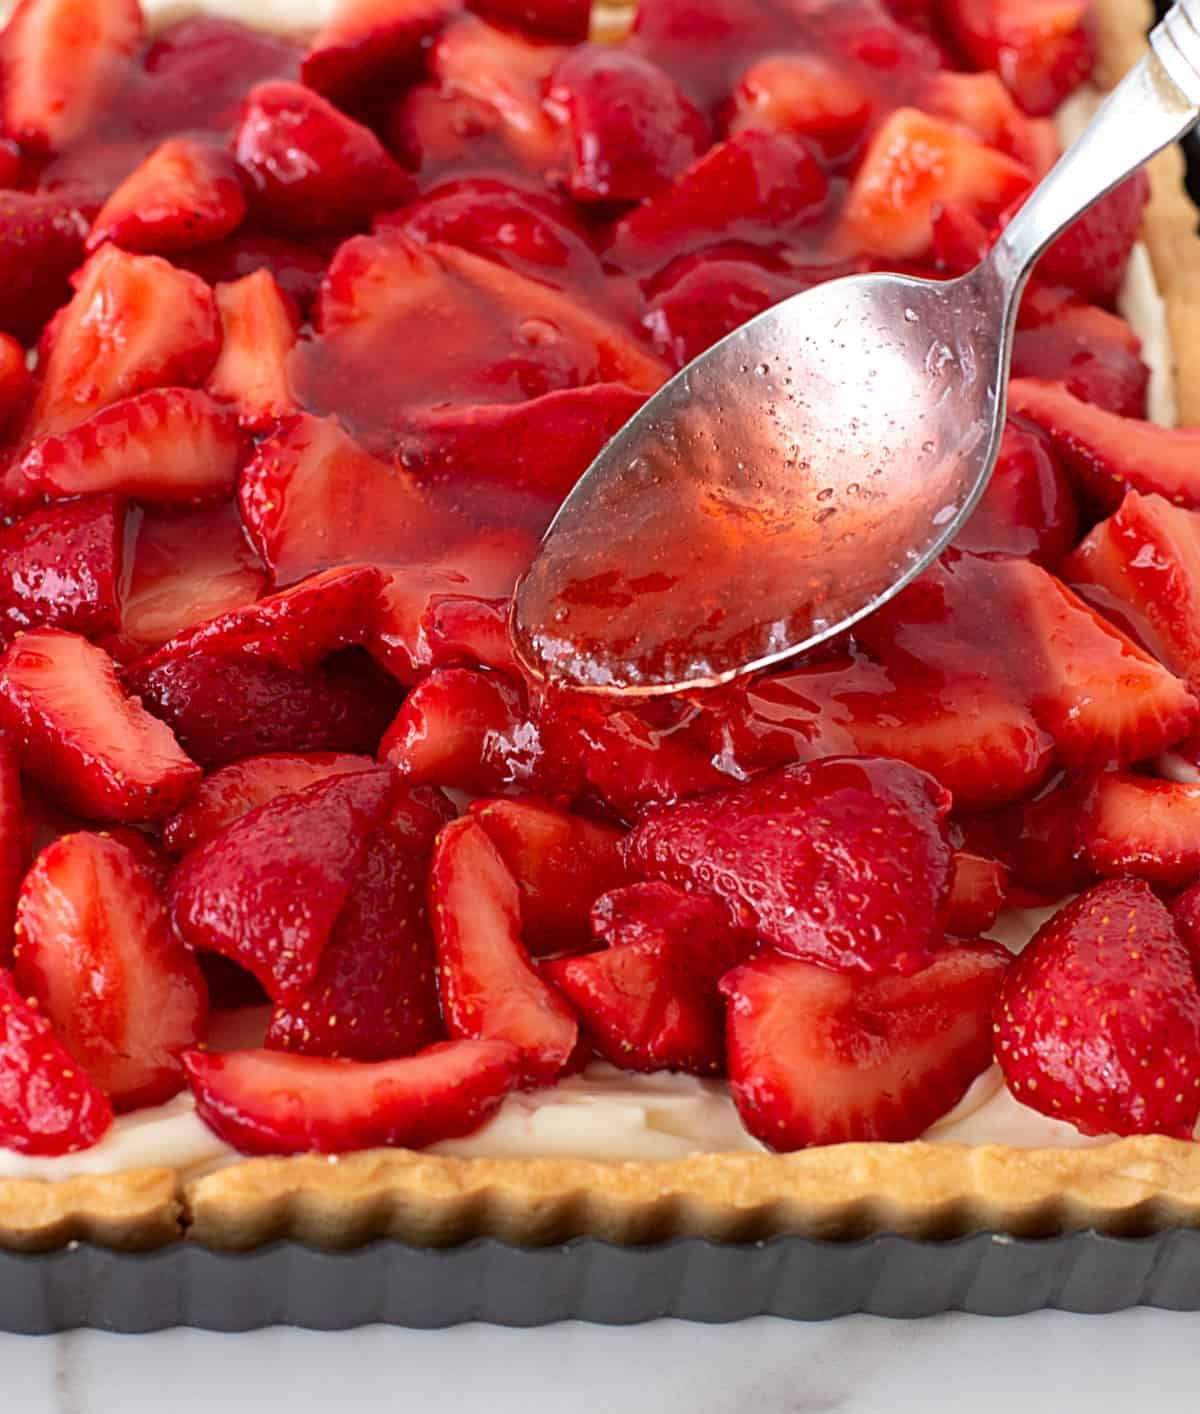 Adding strawberry jelly with spoon to tart topped with strawberries